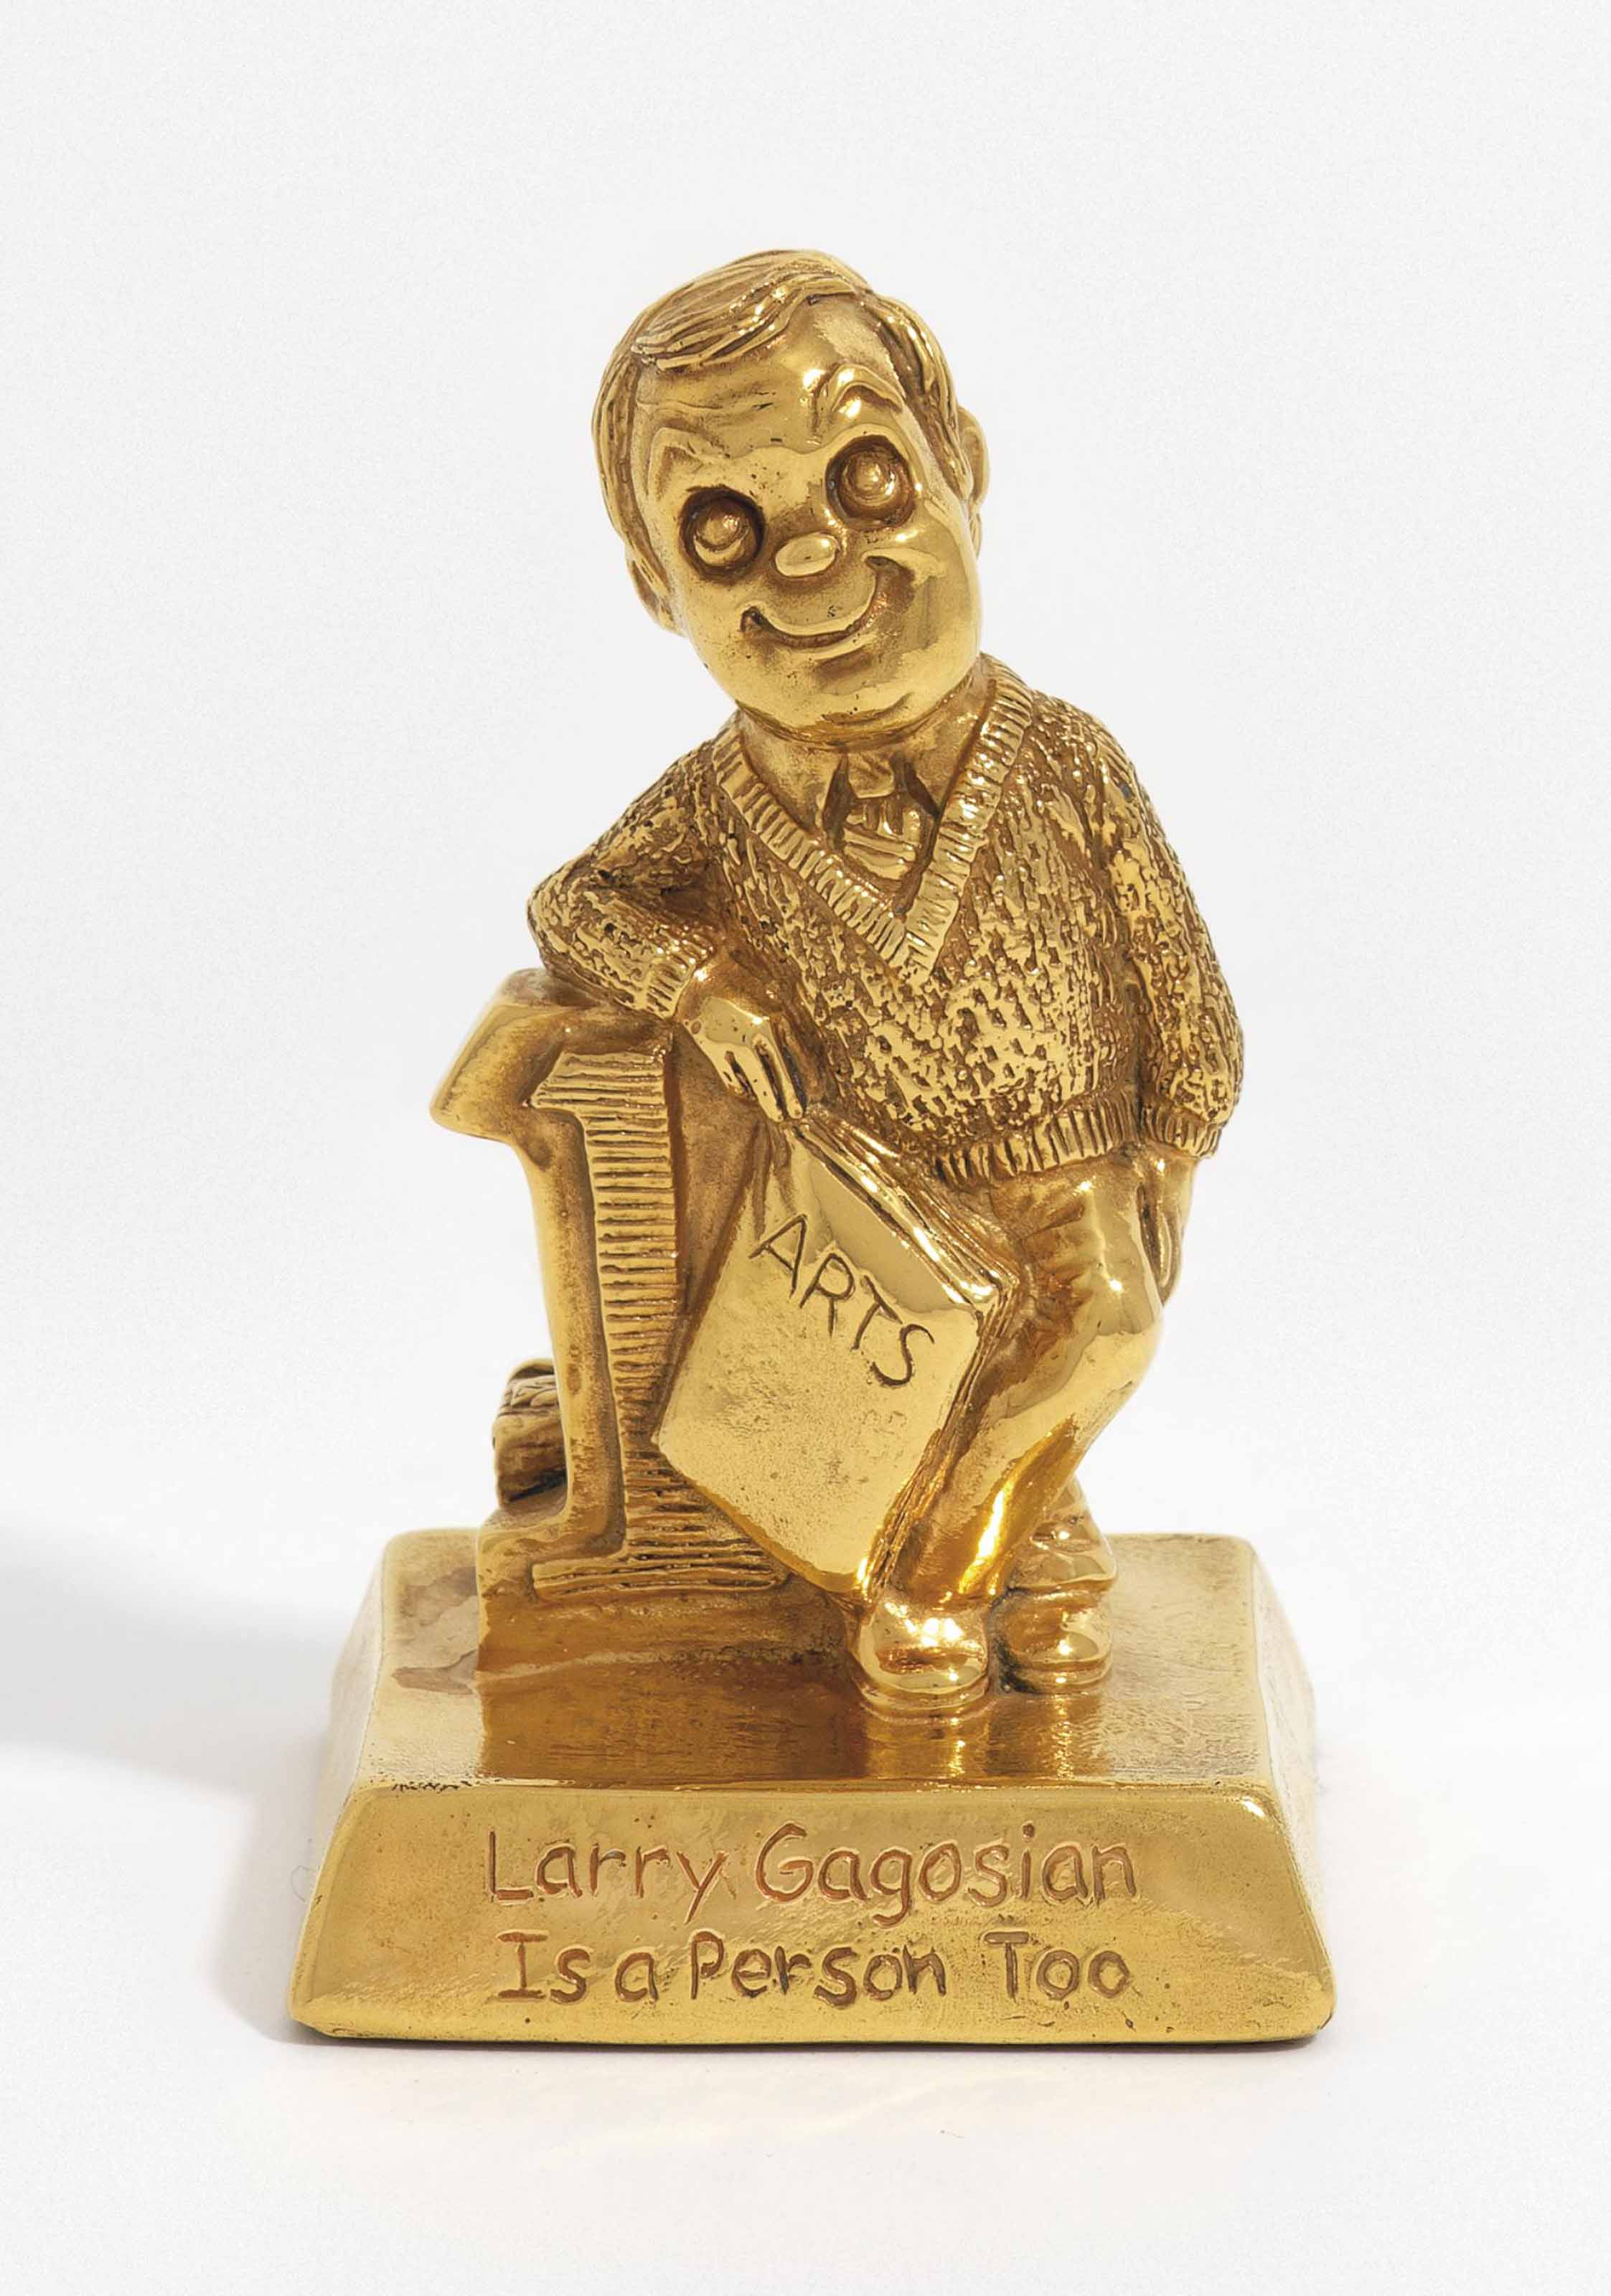 Larry Gagosian Is a Person Too